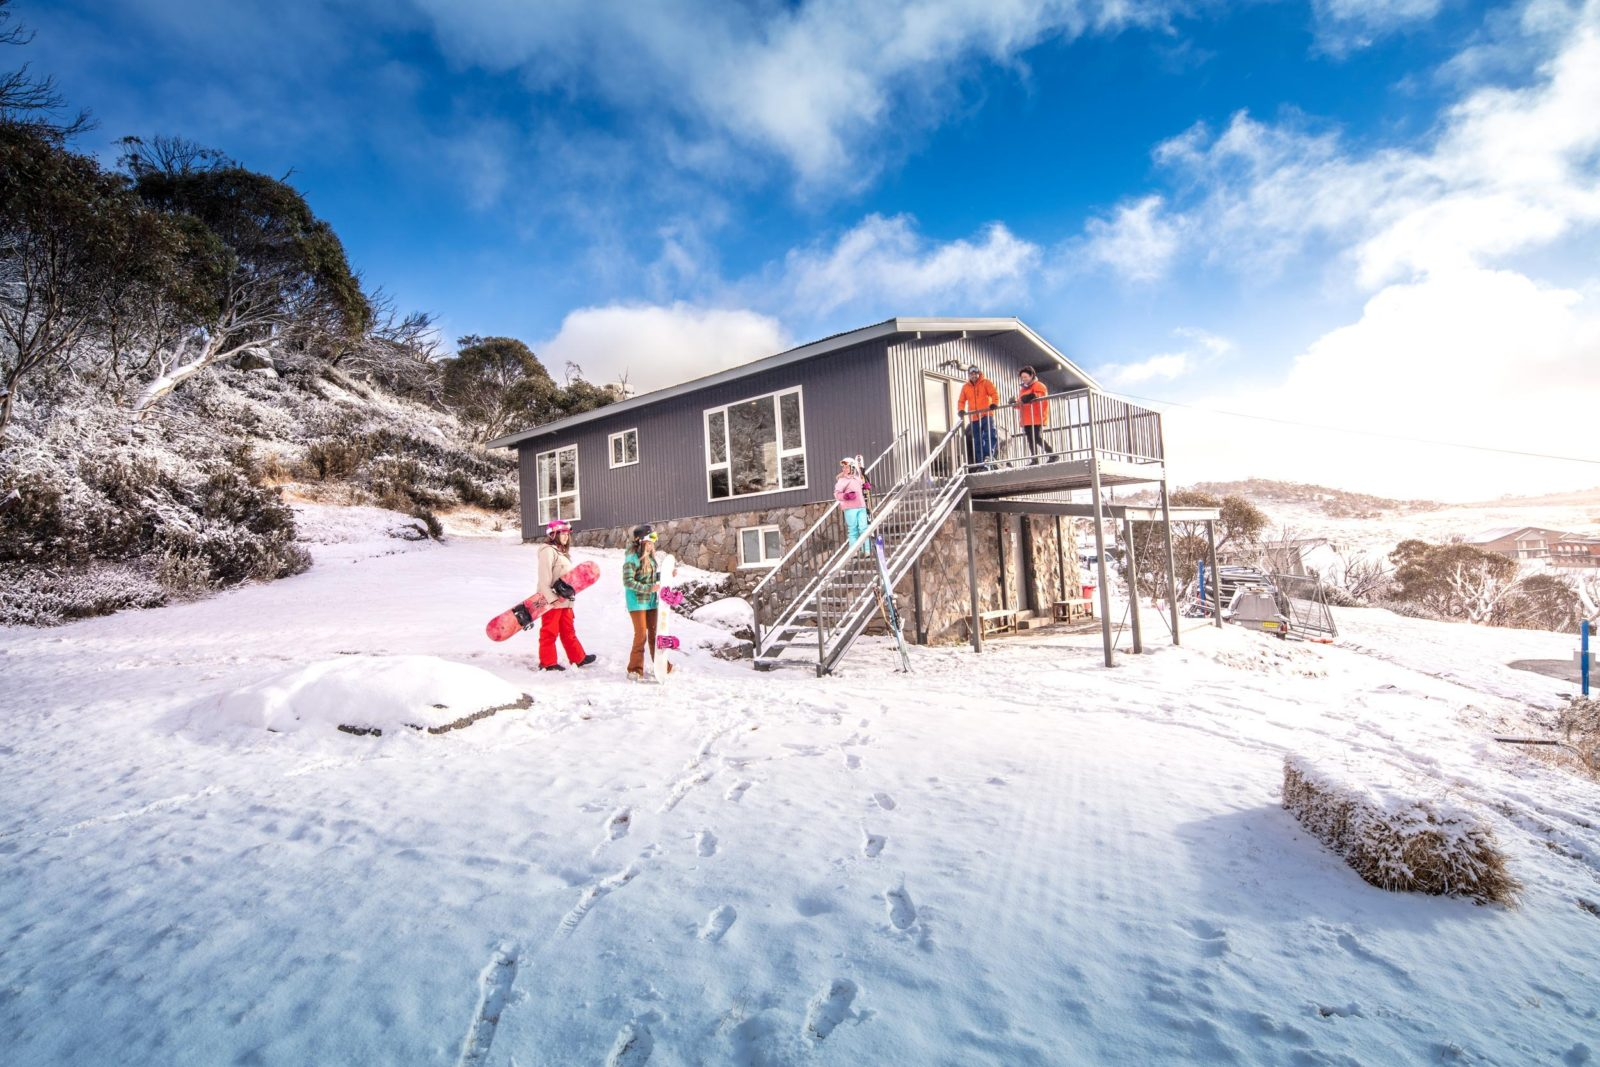 A family in the snow outside Numbananga Lodge, Kosciuszko National Park